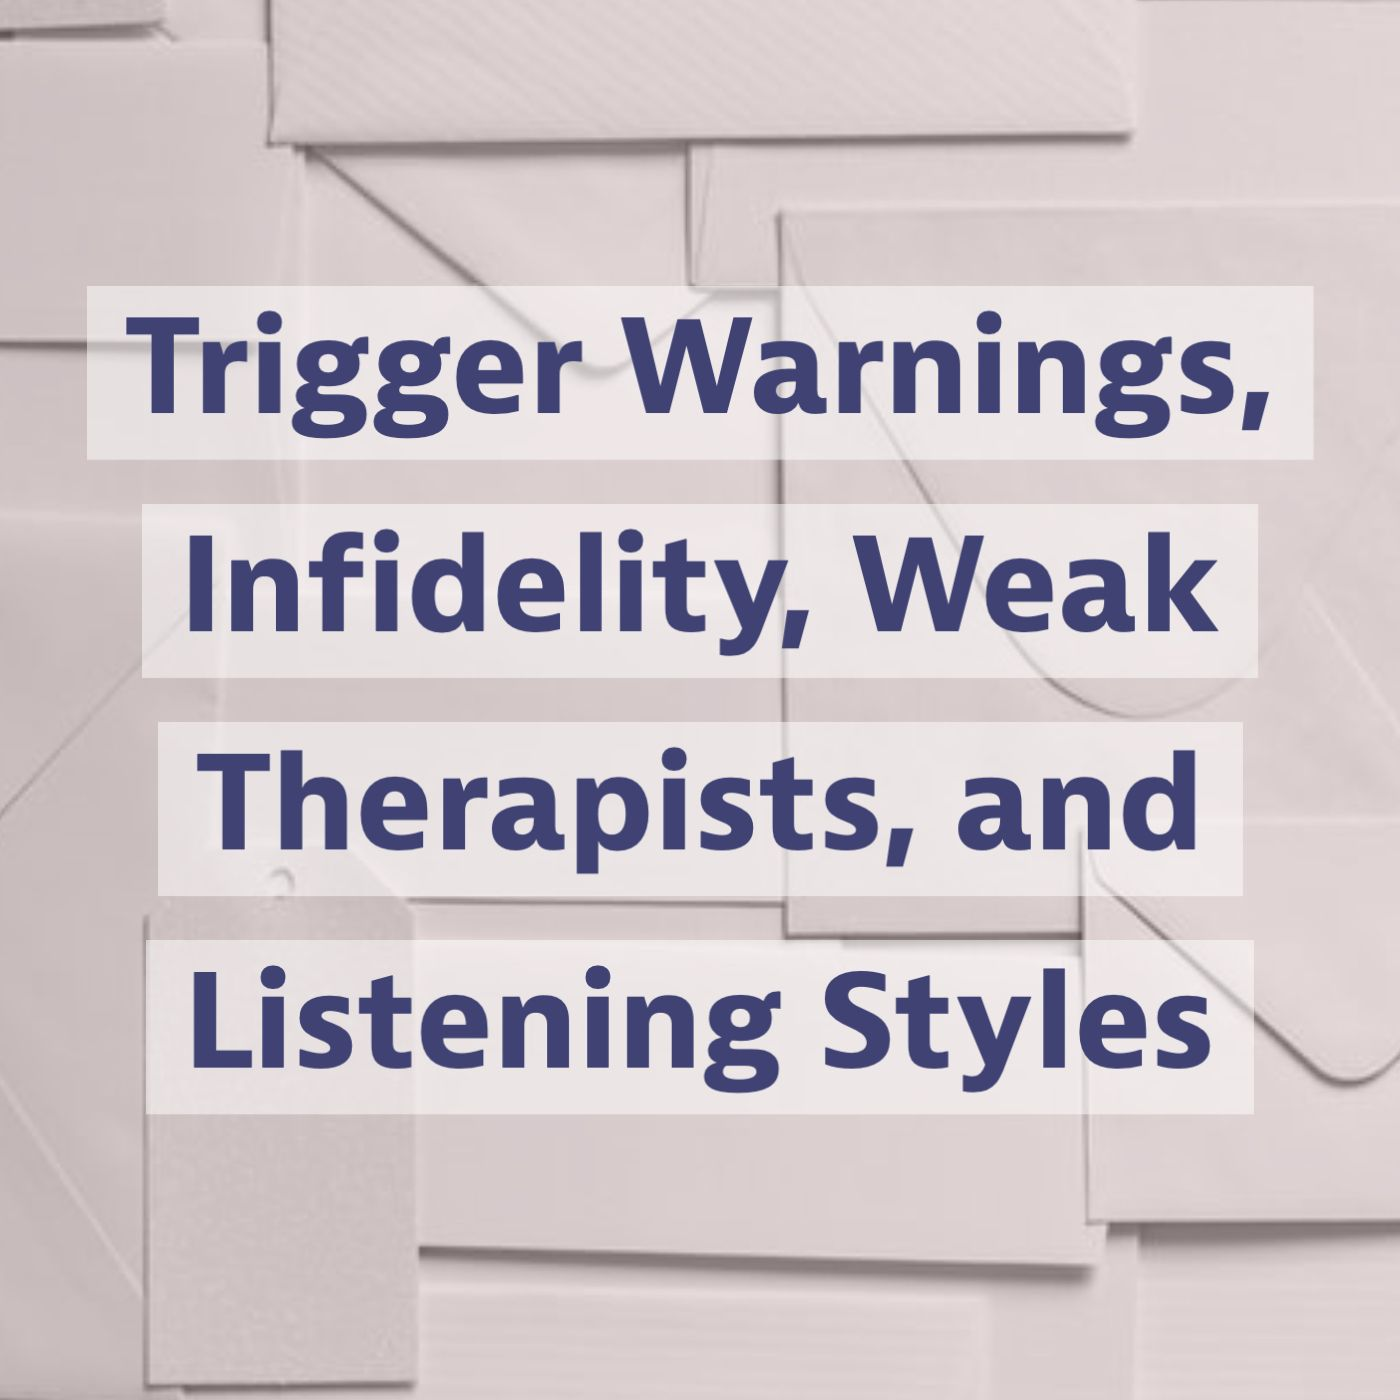 Trigger Warnings, Infidelity, Weak Therapists, and Listening Styles